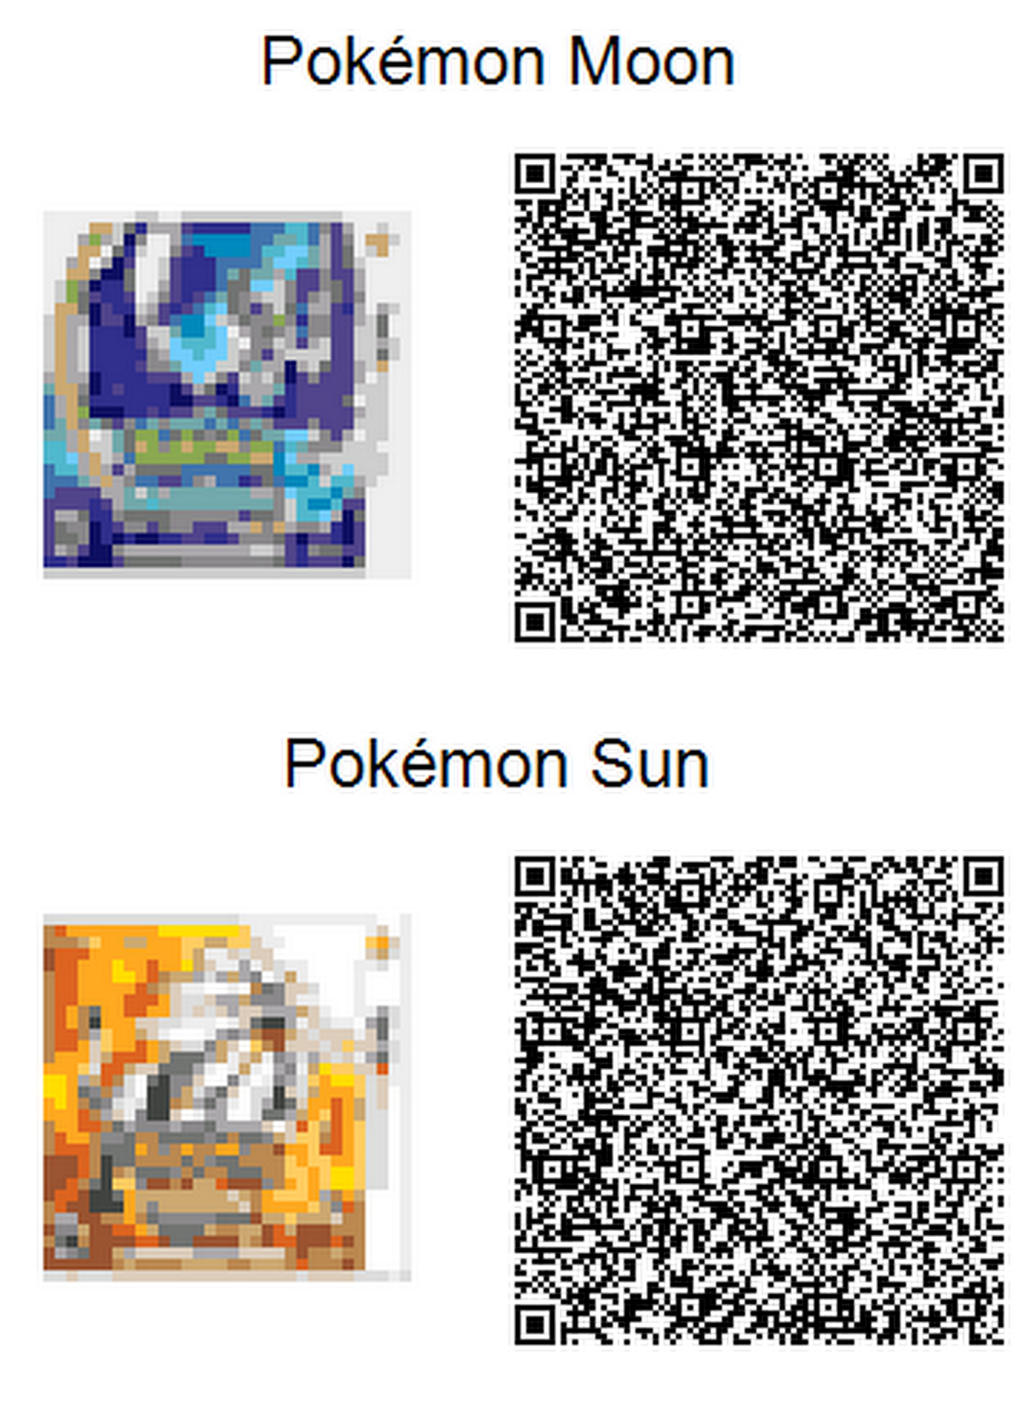 how to get the qr scanner moon version